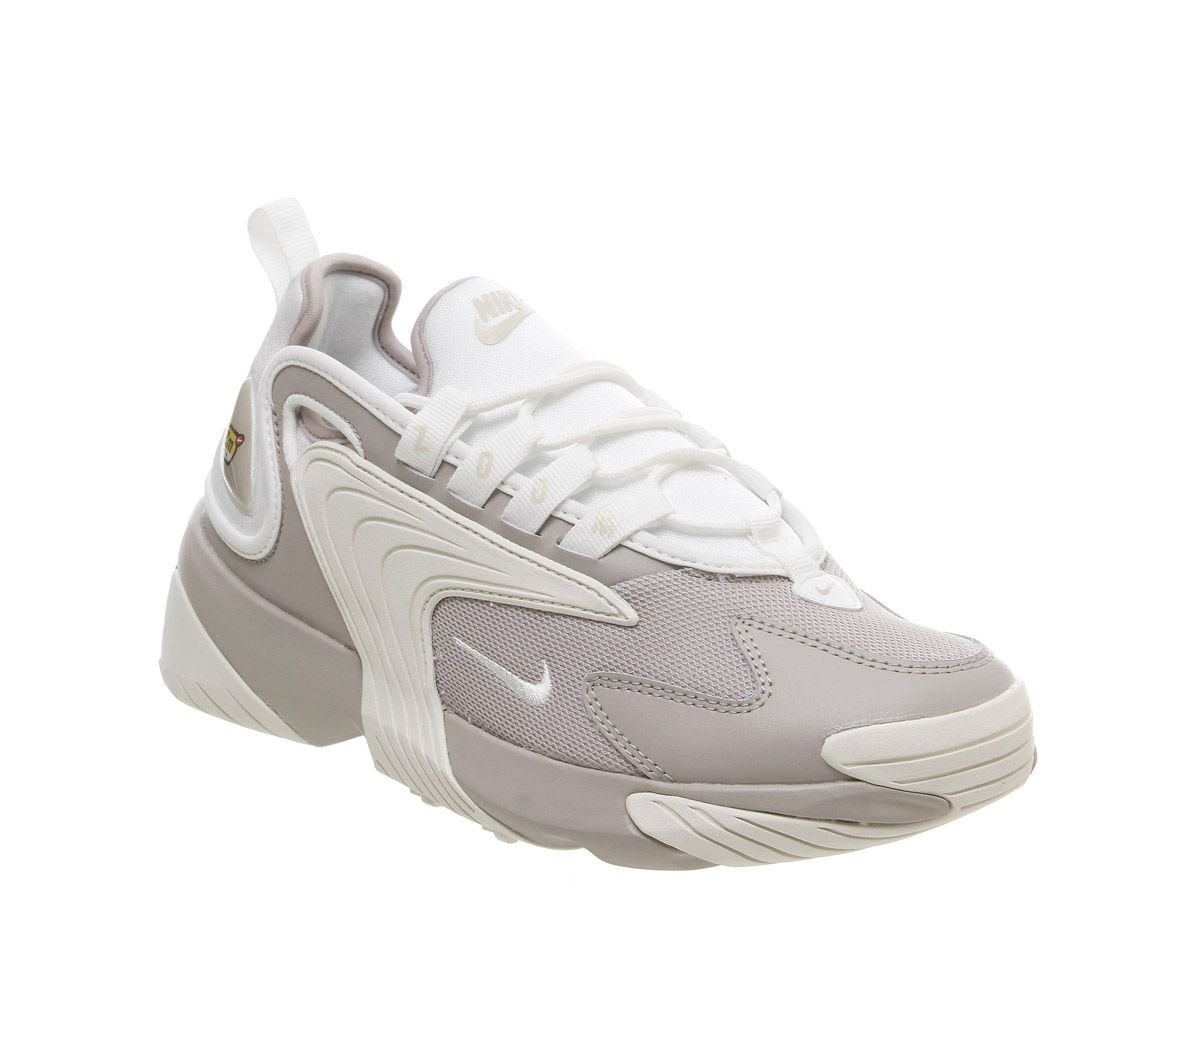 uk availability 0d115 c1bd9 Nike Zoom 2k Trainers Moon Particle Summit White F - Hers trainers